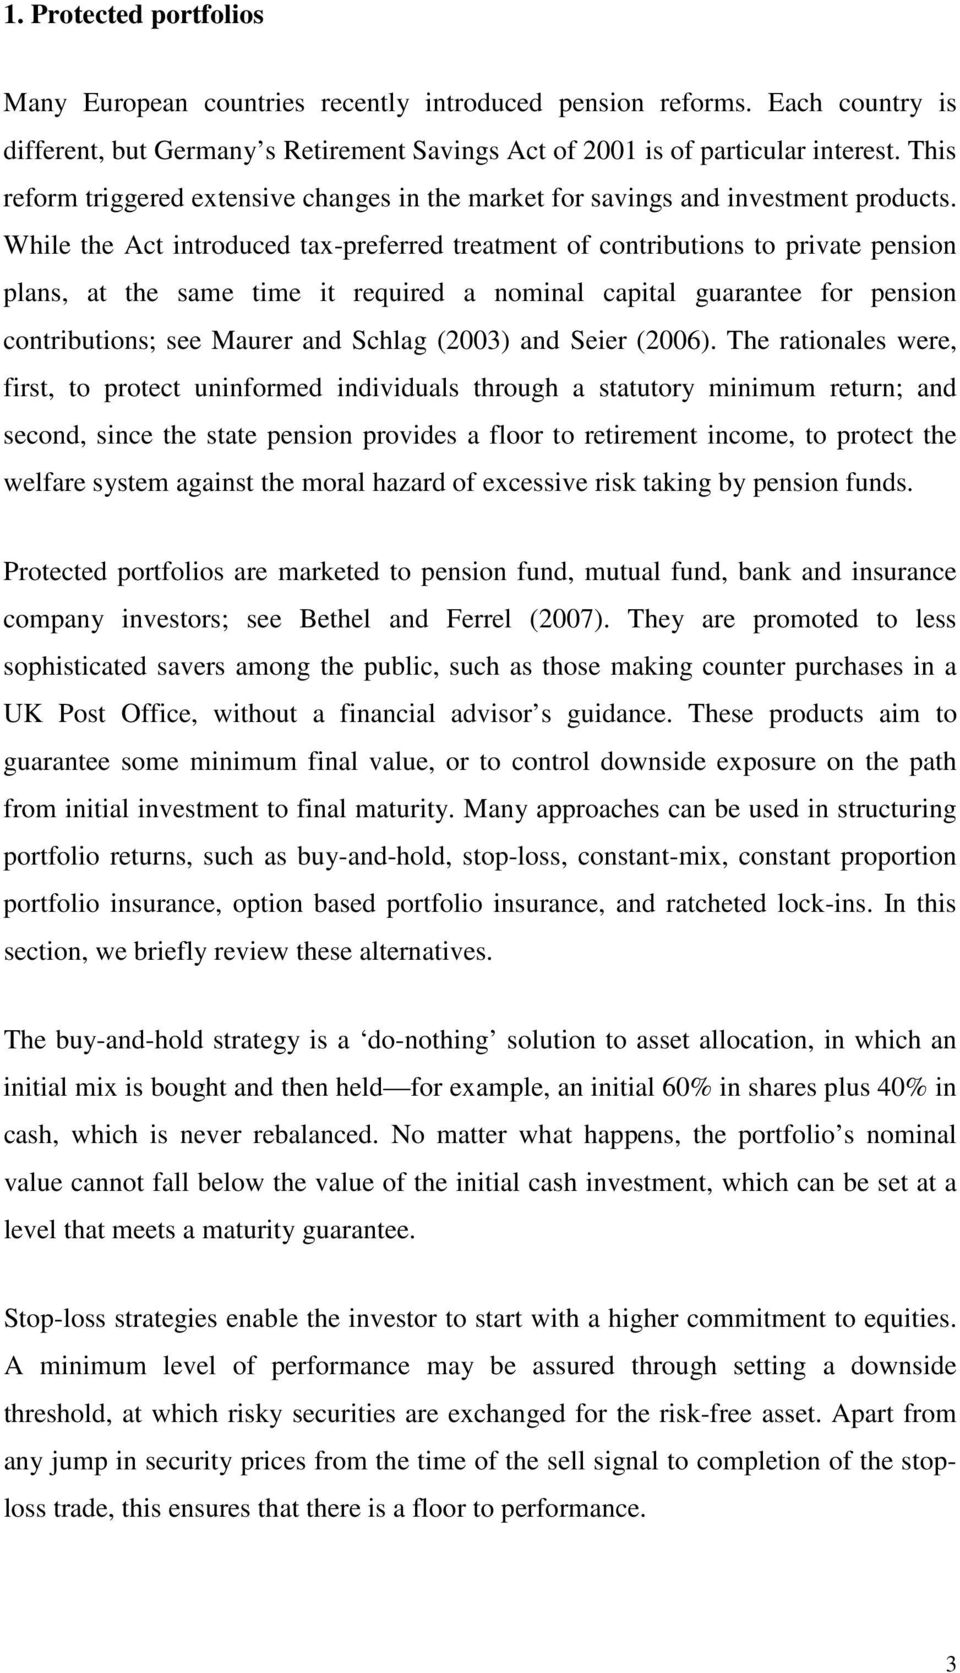 While the Act introduced tax-preferred treatment of contributions to private pension plans, at the same time it required a nominal capital guarantee for pension contributions; see Maurer and Schlag